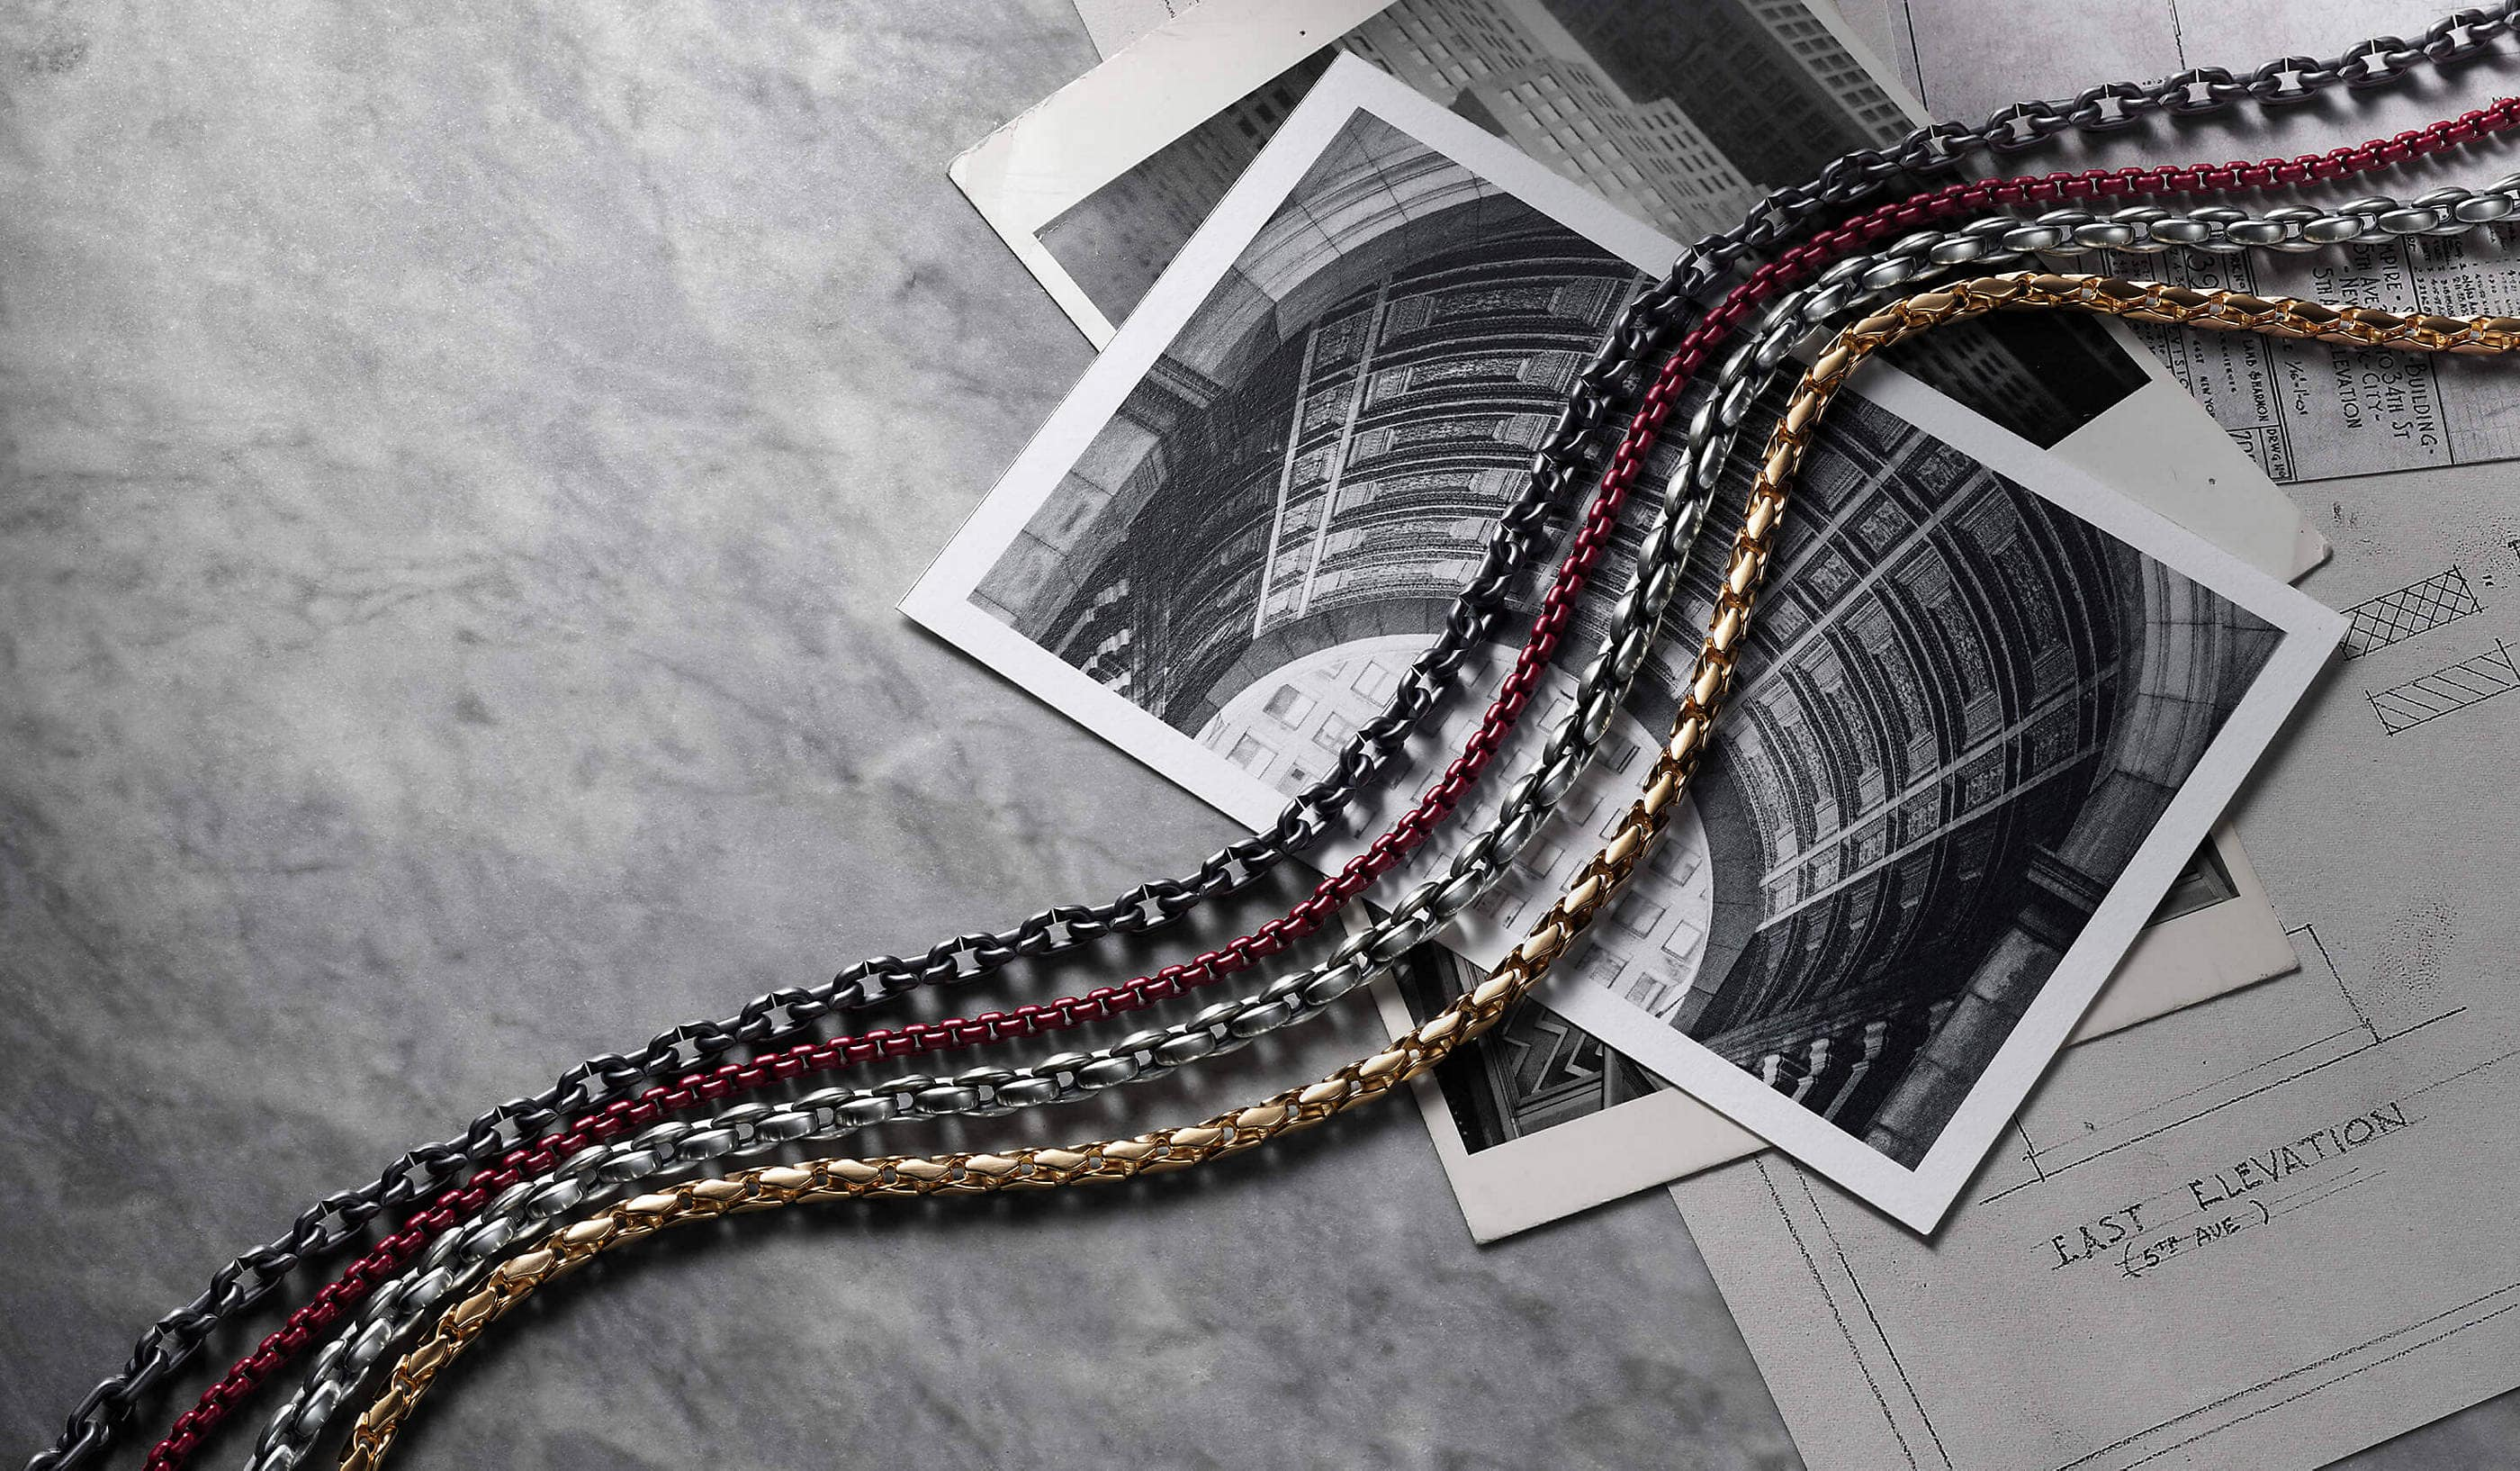 A color photograph shows four David Yurman men's box-chain necklaces arranged in a row atop black-and-white architectural photographs scattered on a grey marble surface. One necklace is crafted from sterling silver, one necklace is crafted from 18K yellow gold, one necklace is crafted from red-hued stainless steel and the last necklace is crafted from grey titanium.